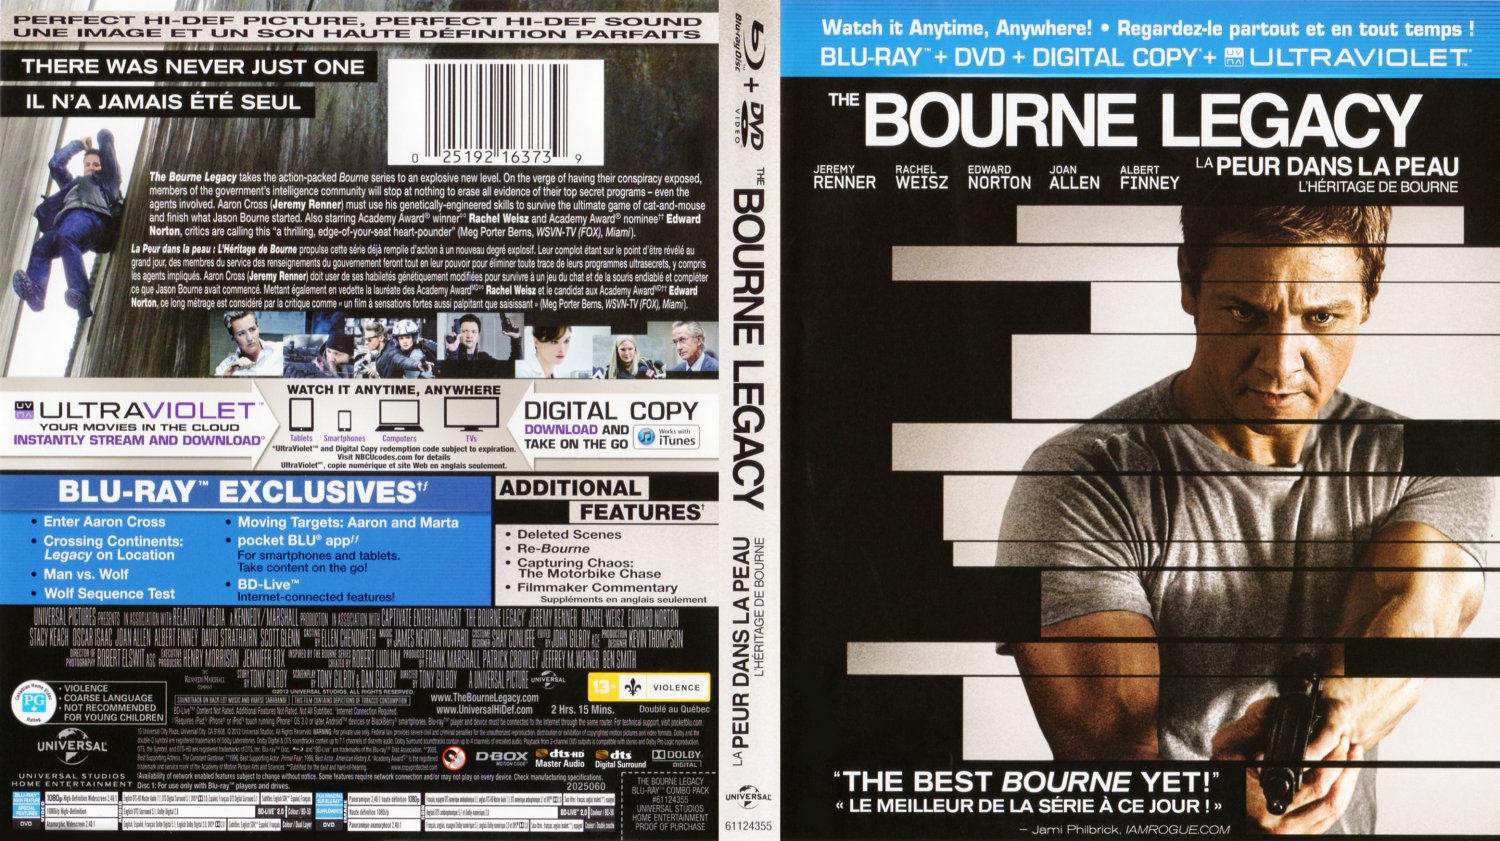 The Bourne Legacy - Movie Blu-Ray Scanned Covers - The ...